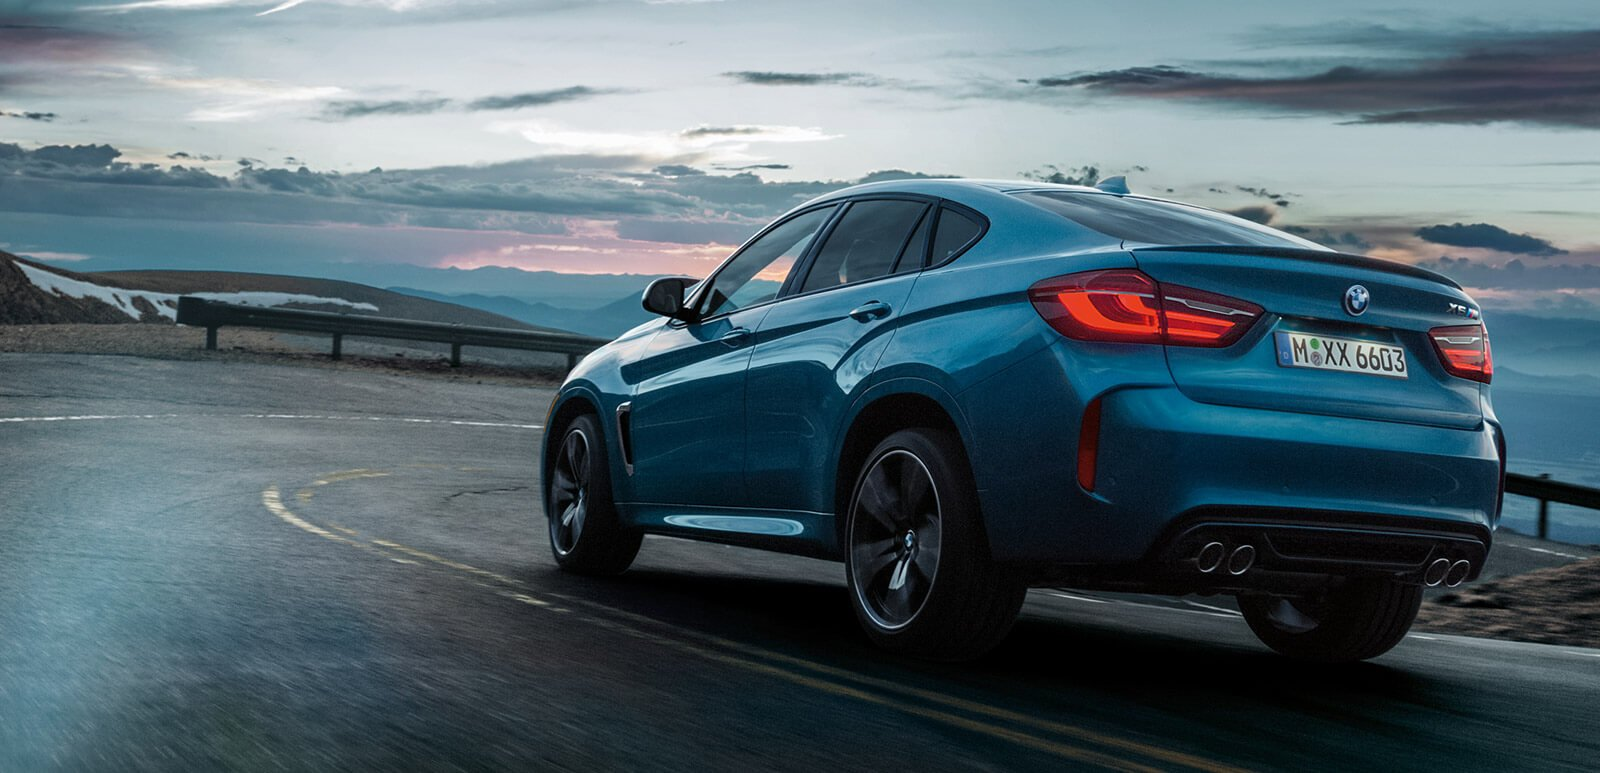 The 2020 BMW X3 M and BMW X4 M- SUV's of 500-HP